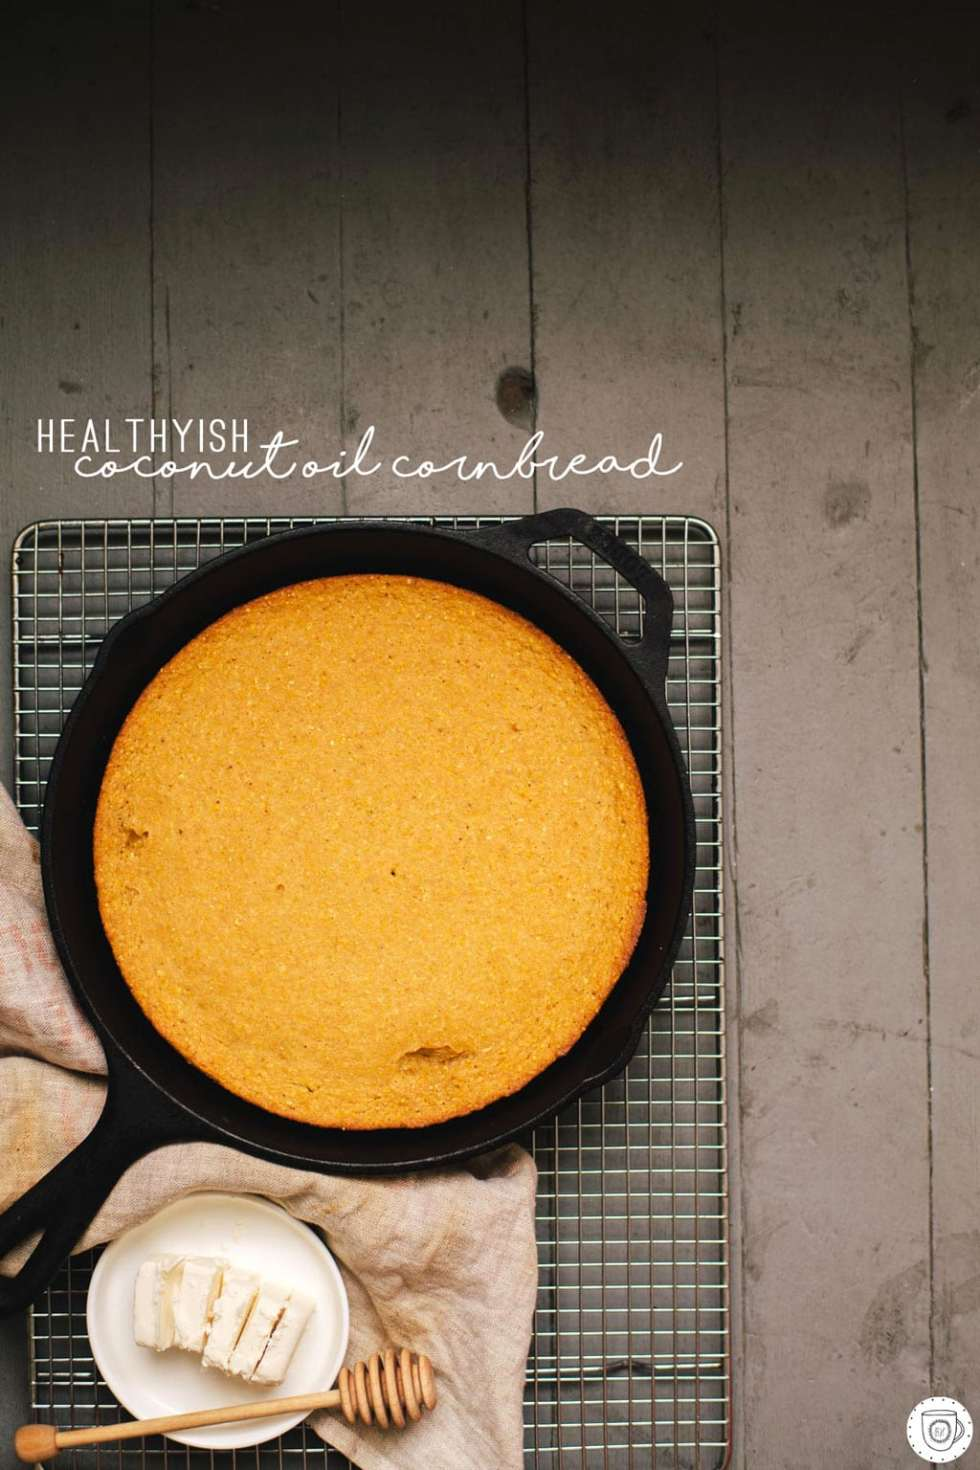 Healthyish Coconut Oil Cornbread | Brewing Happiness